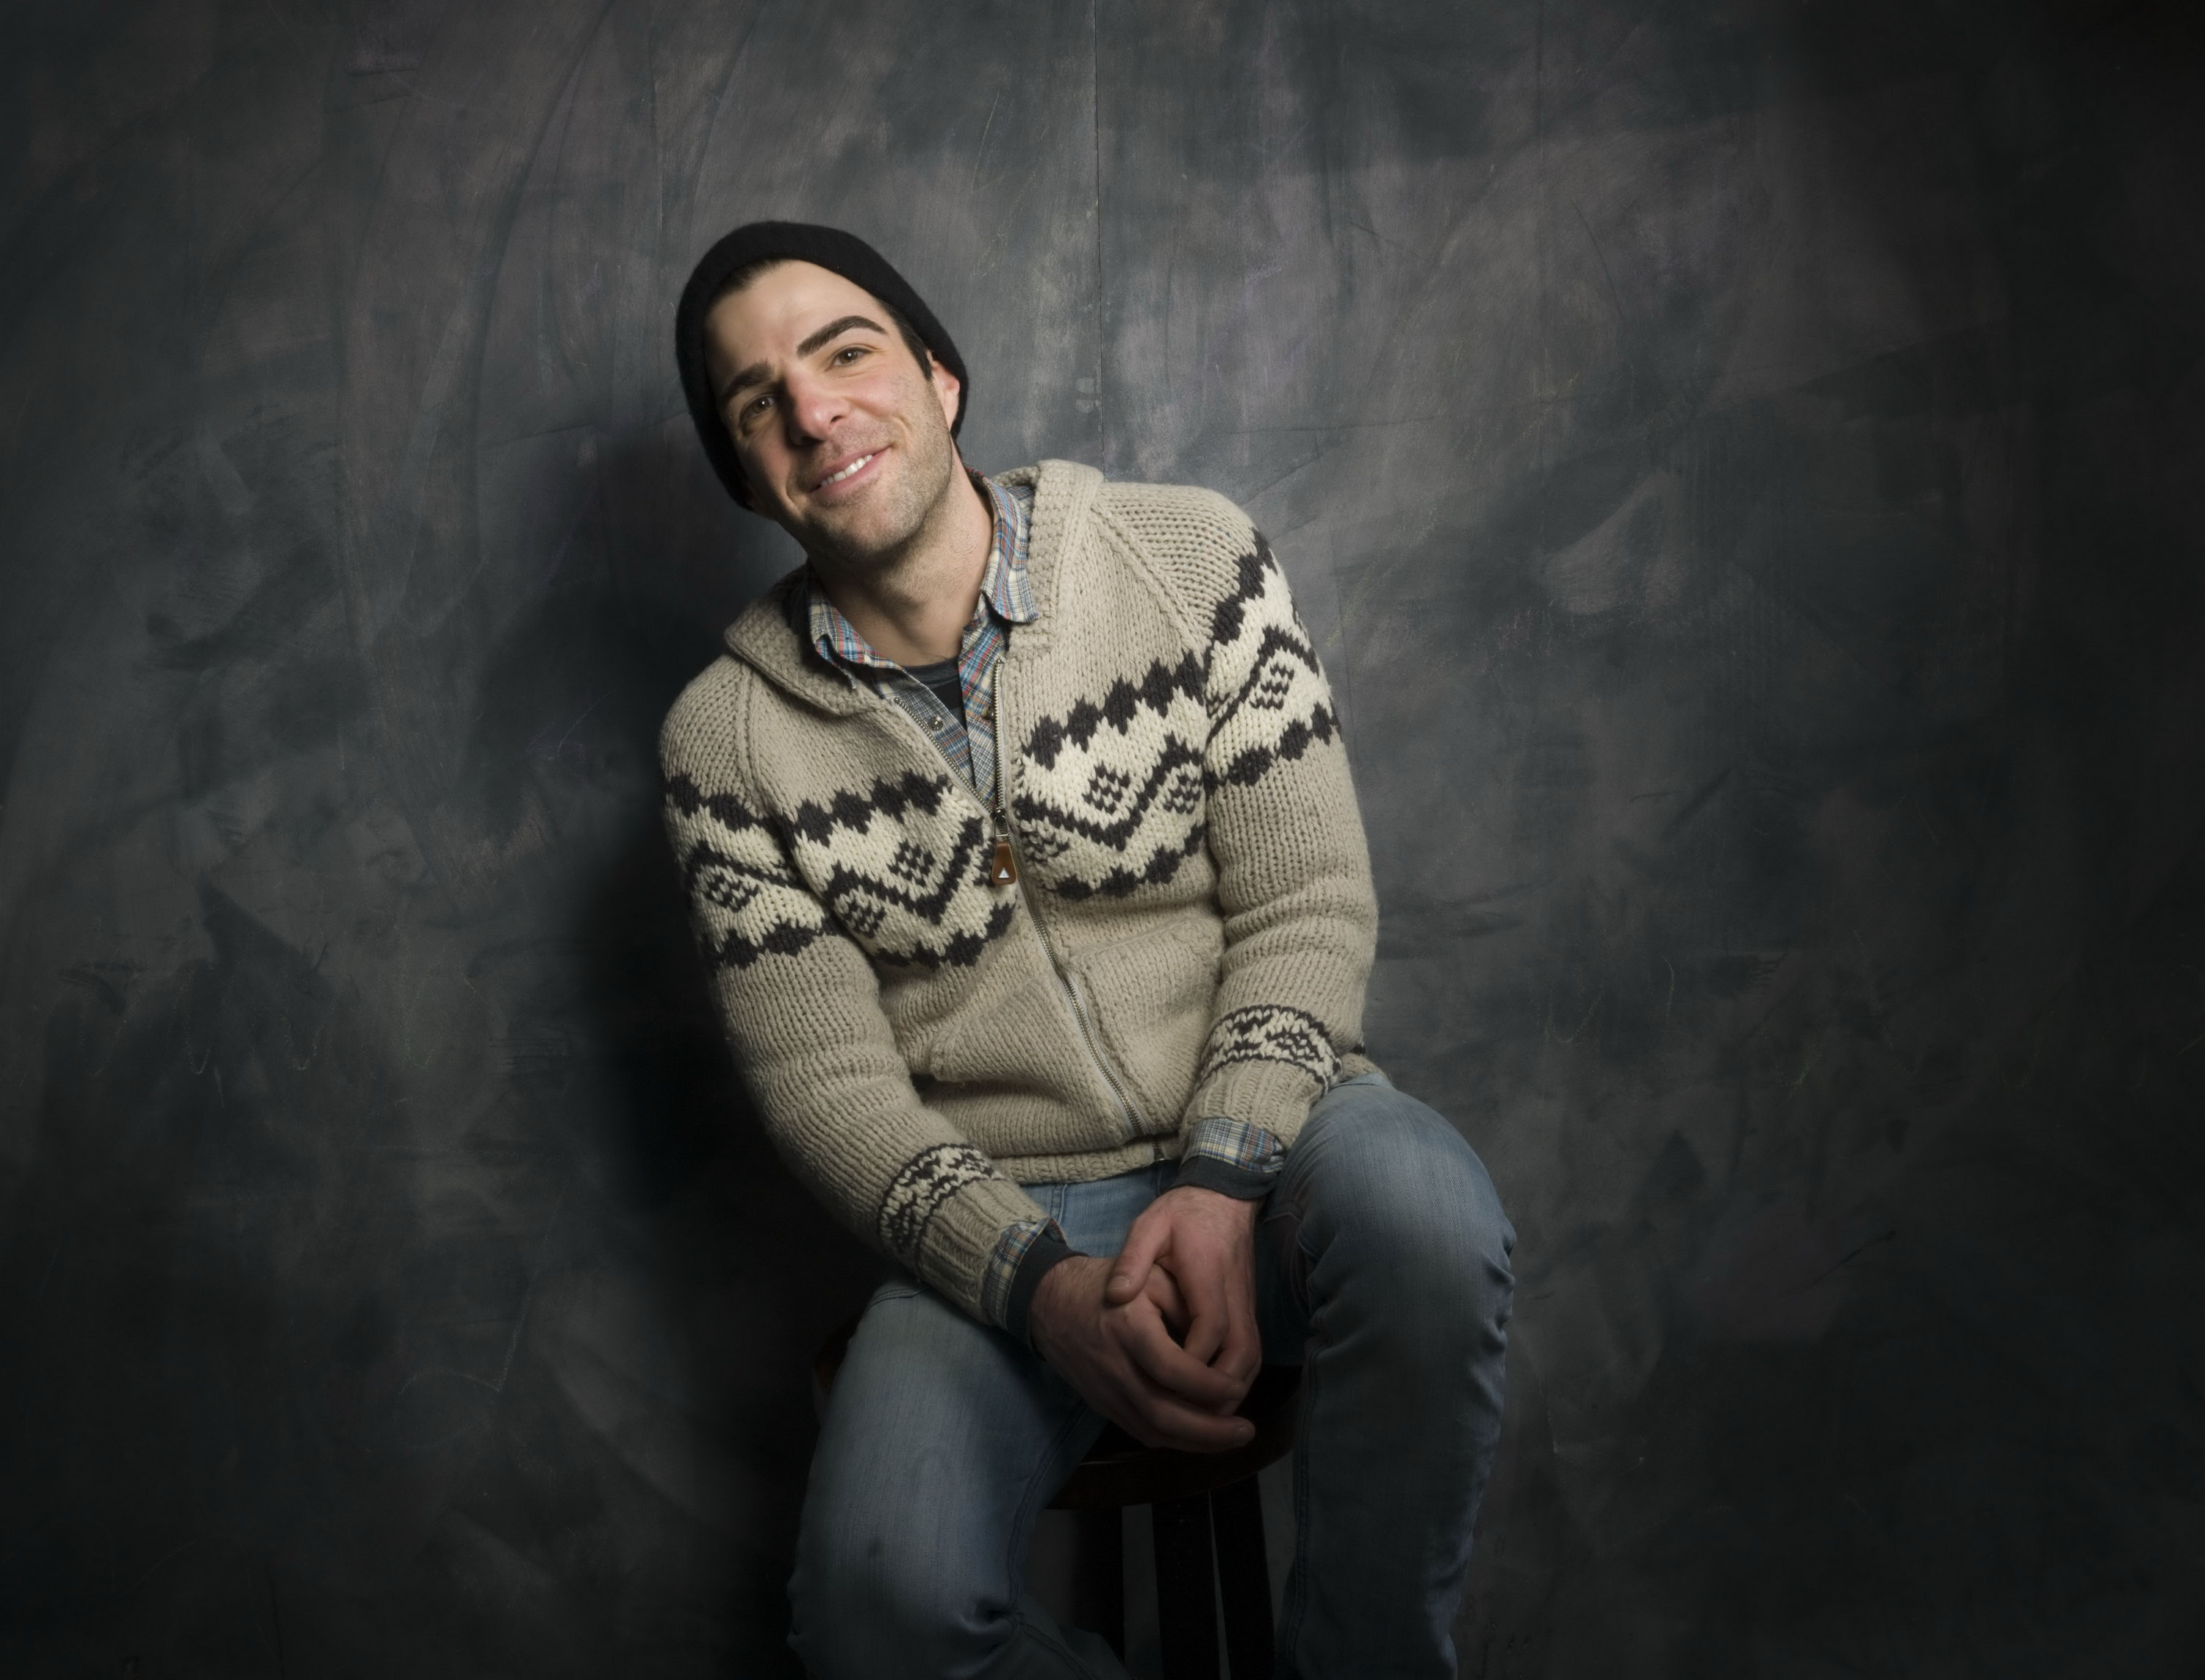 3000x2286 - Zachary Quinto Wallpapers 30